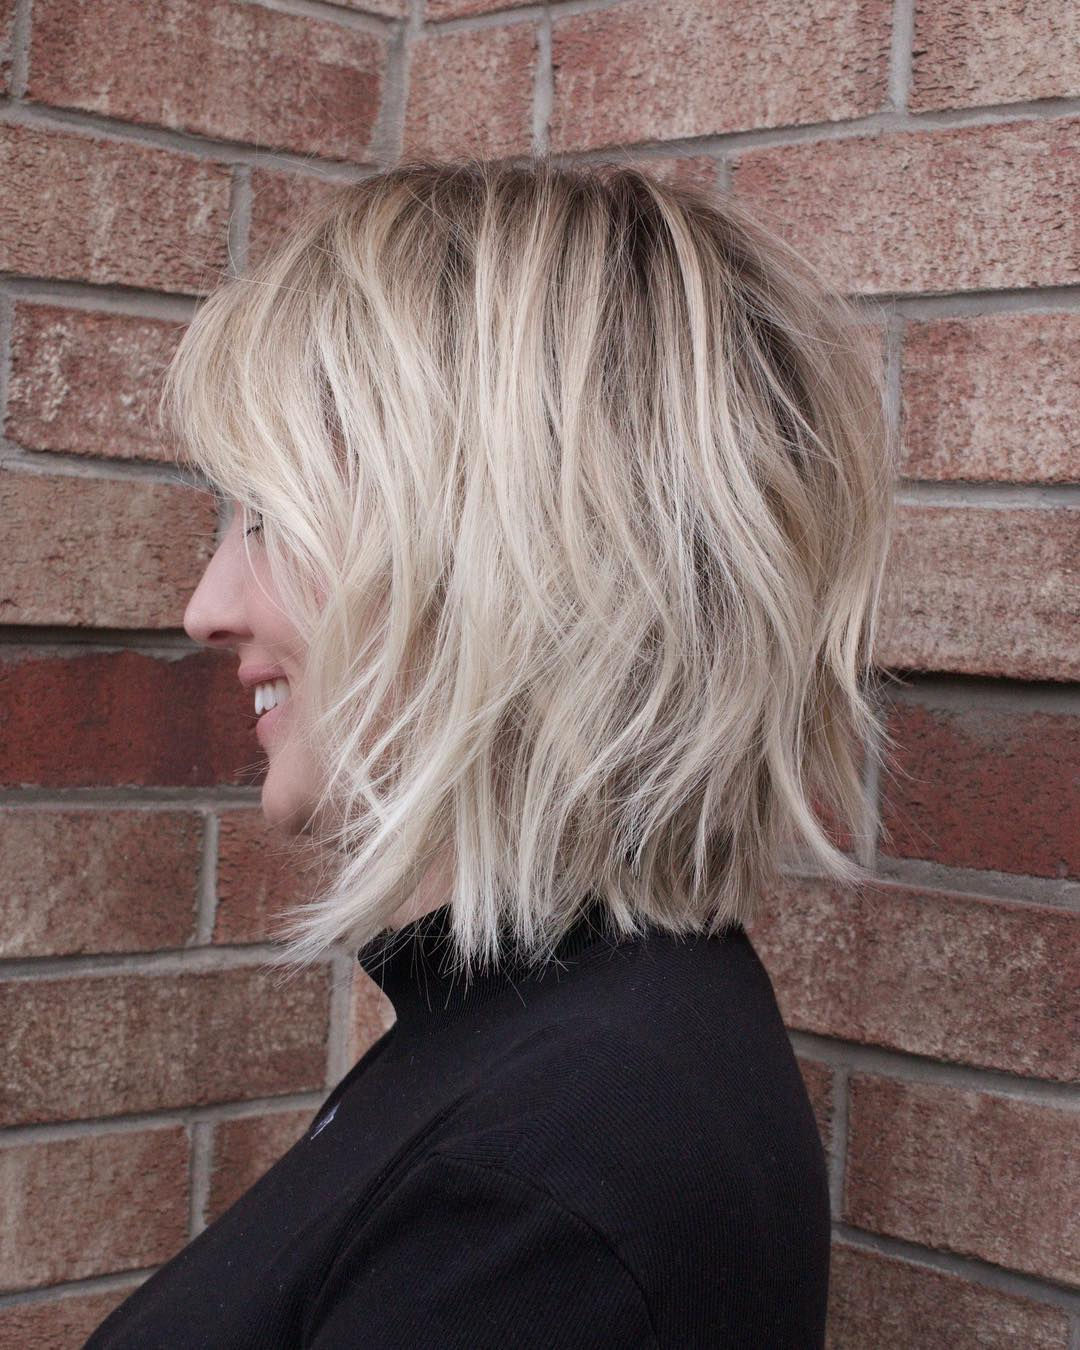 10 Casual Medium Bob Hair Cuts Female Bob Hairstyles 2020